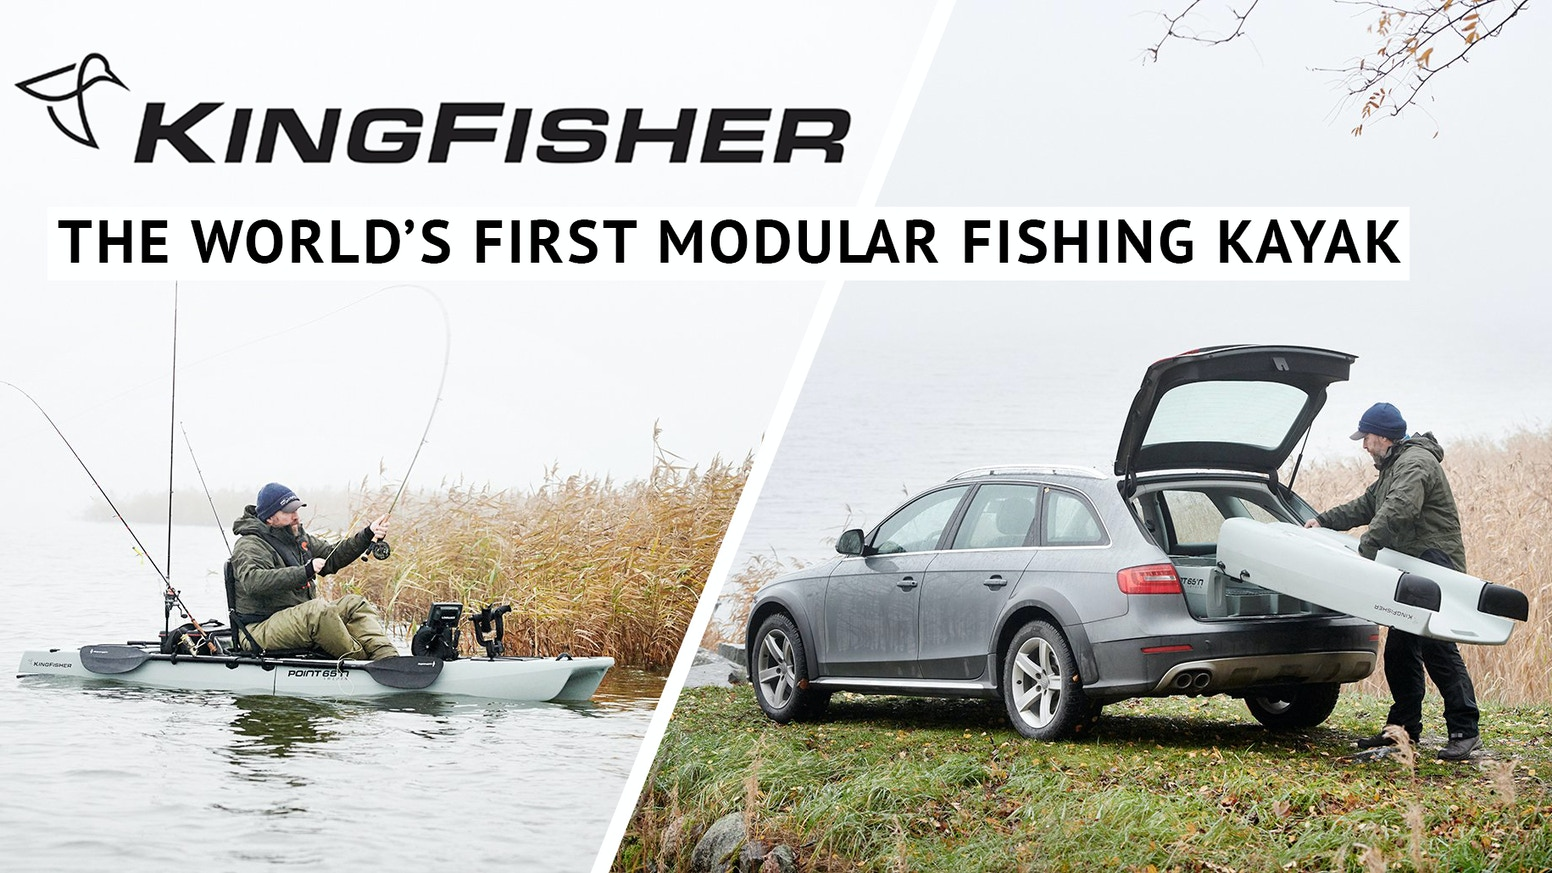 With its patented, innovative modular design, the KingFisher is the world's first fishing kayak that fits in your car, apartment, even under your bed!